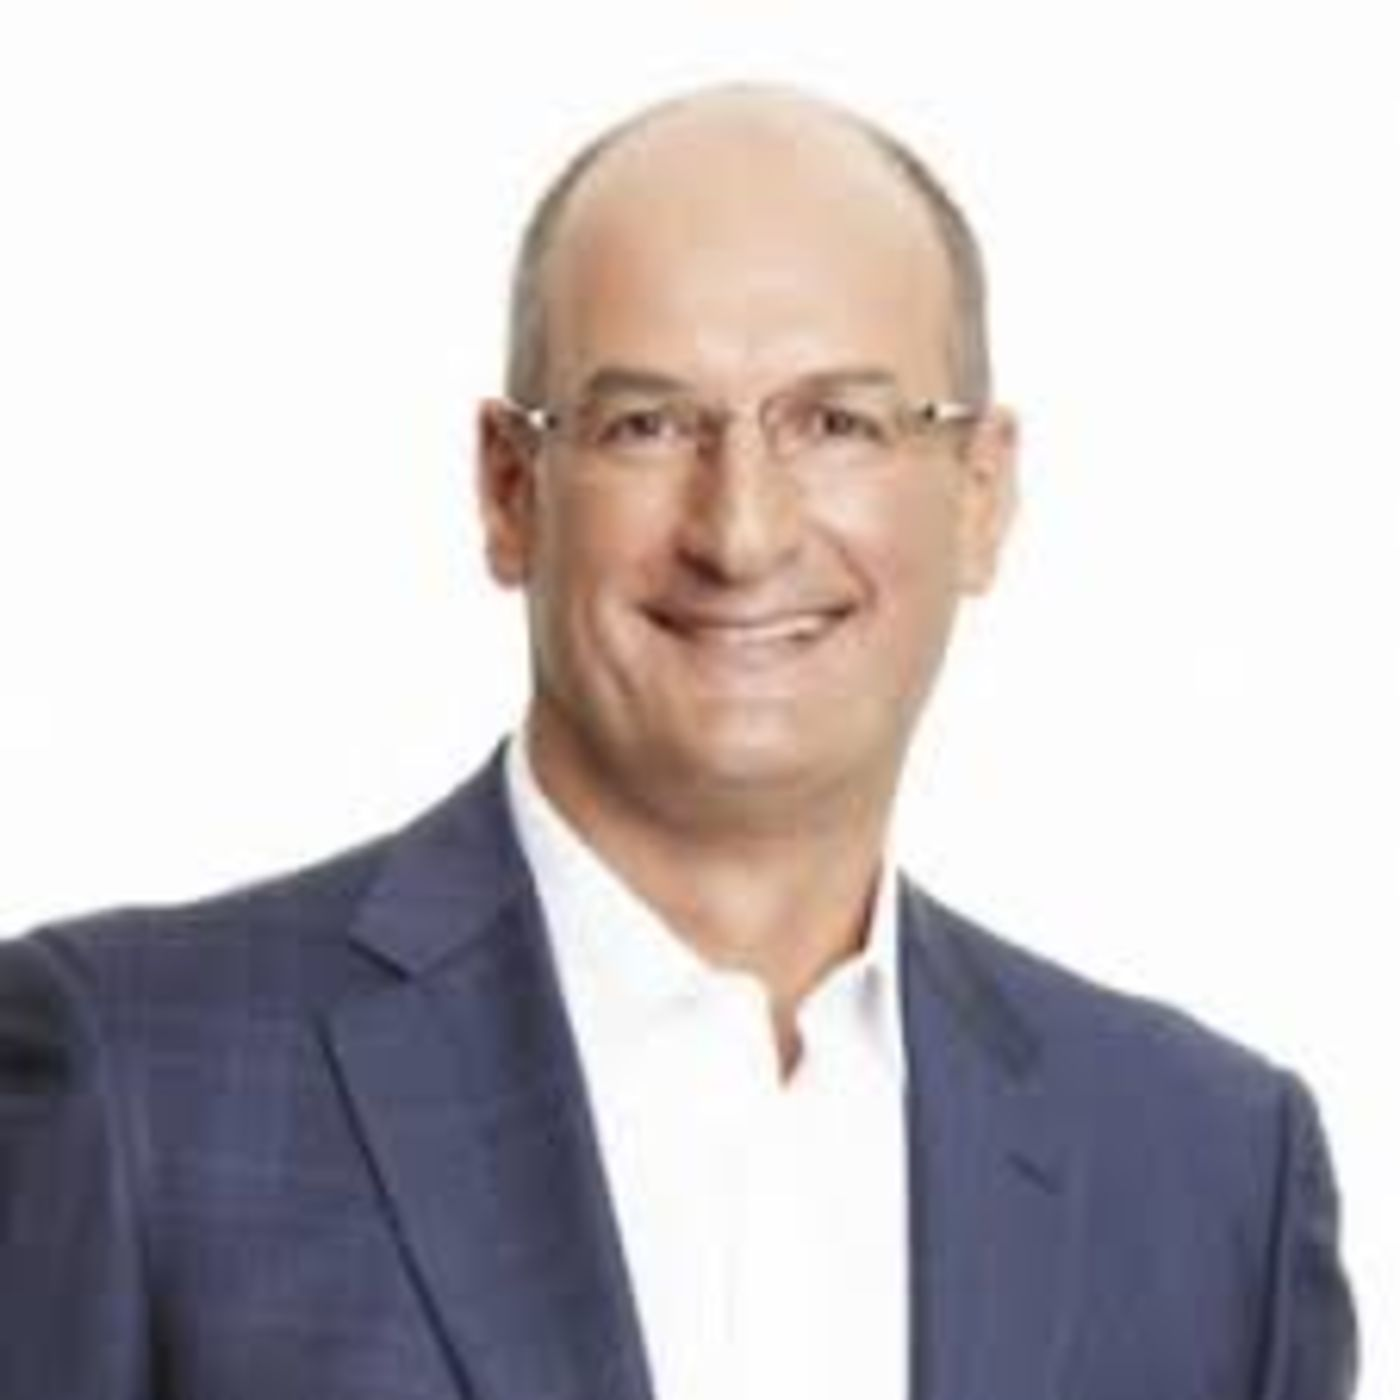 David Koch - Finance, start-ups and small business - 'Kochie' shares his valuable insights